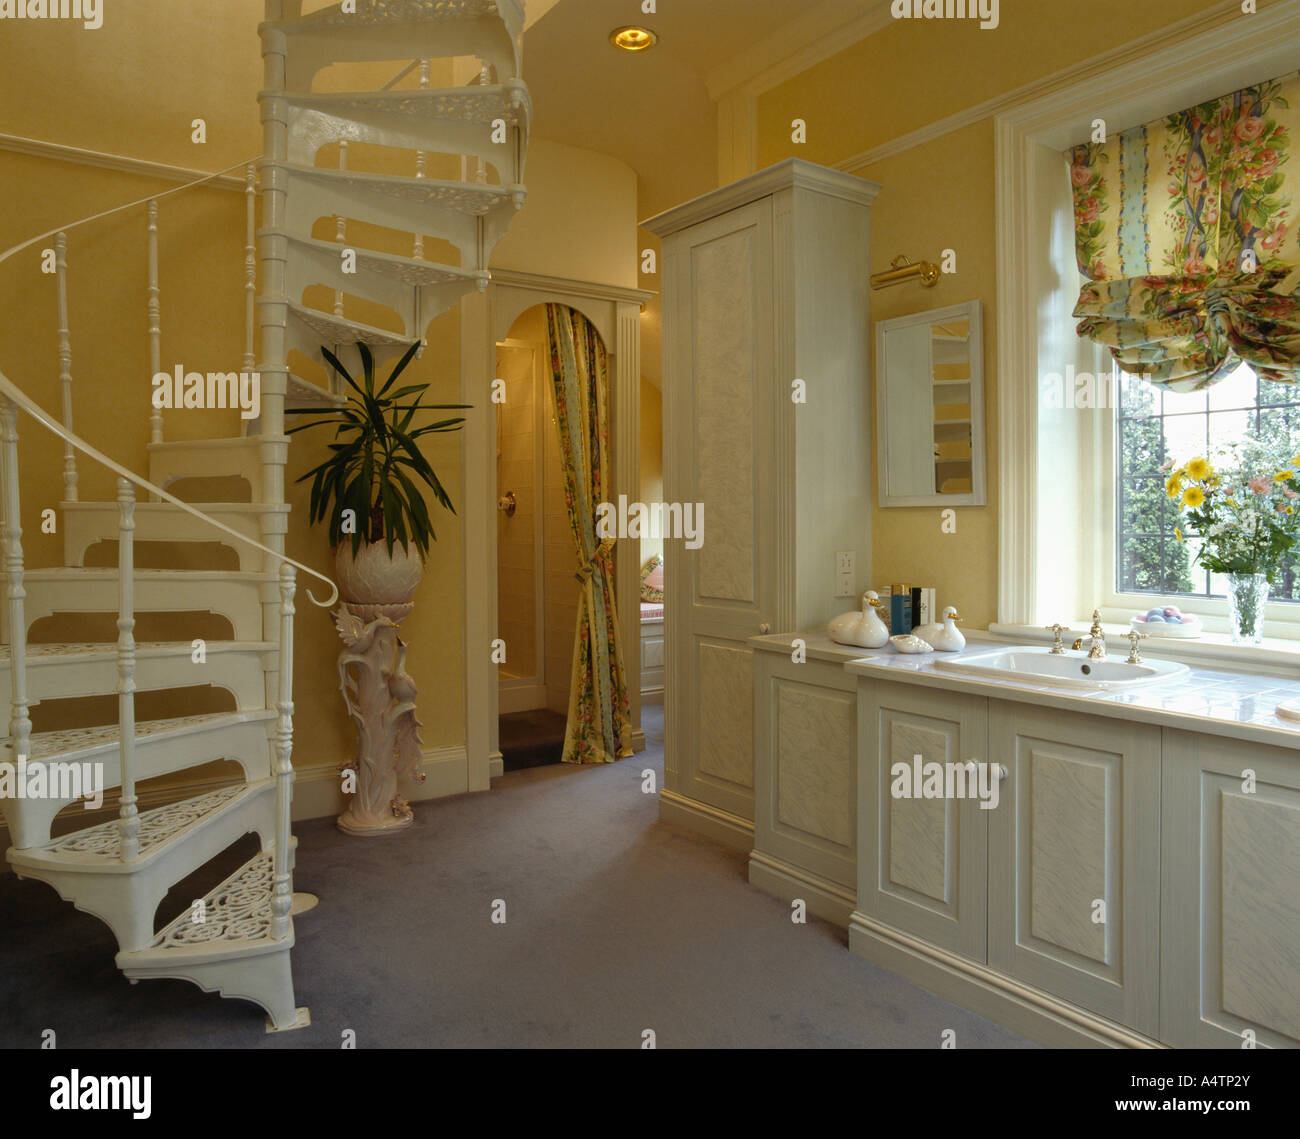 grey and yellow bathroom. Spiral staircase in pale yellow bathroom with grey carpet and built  vanity units